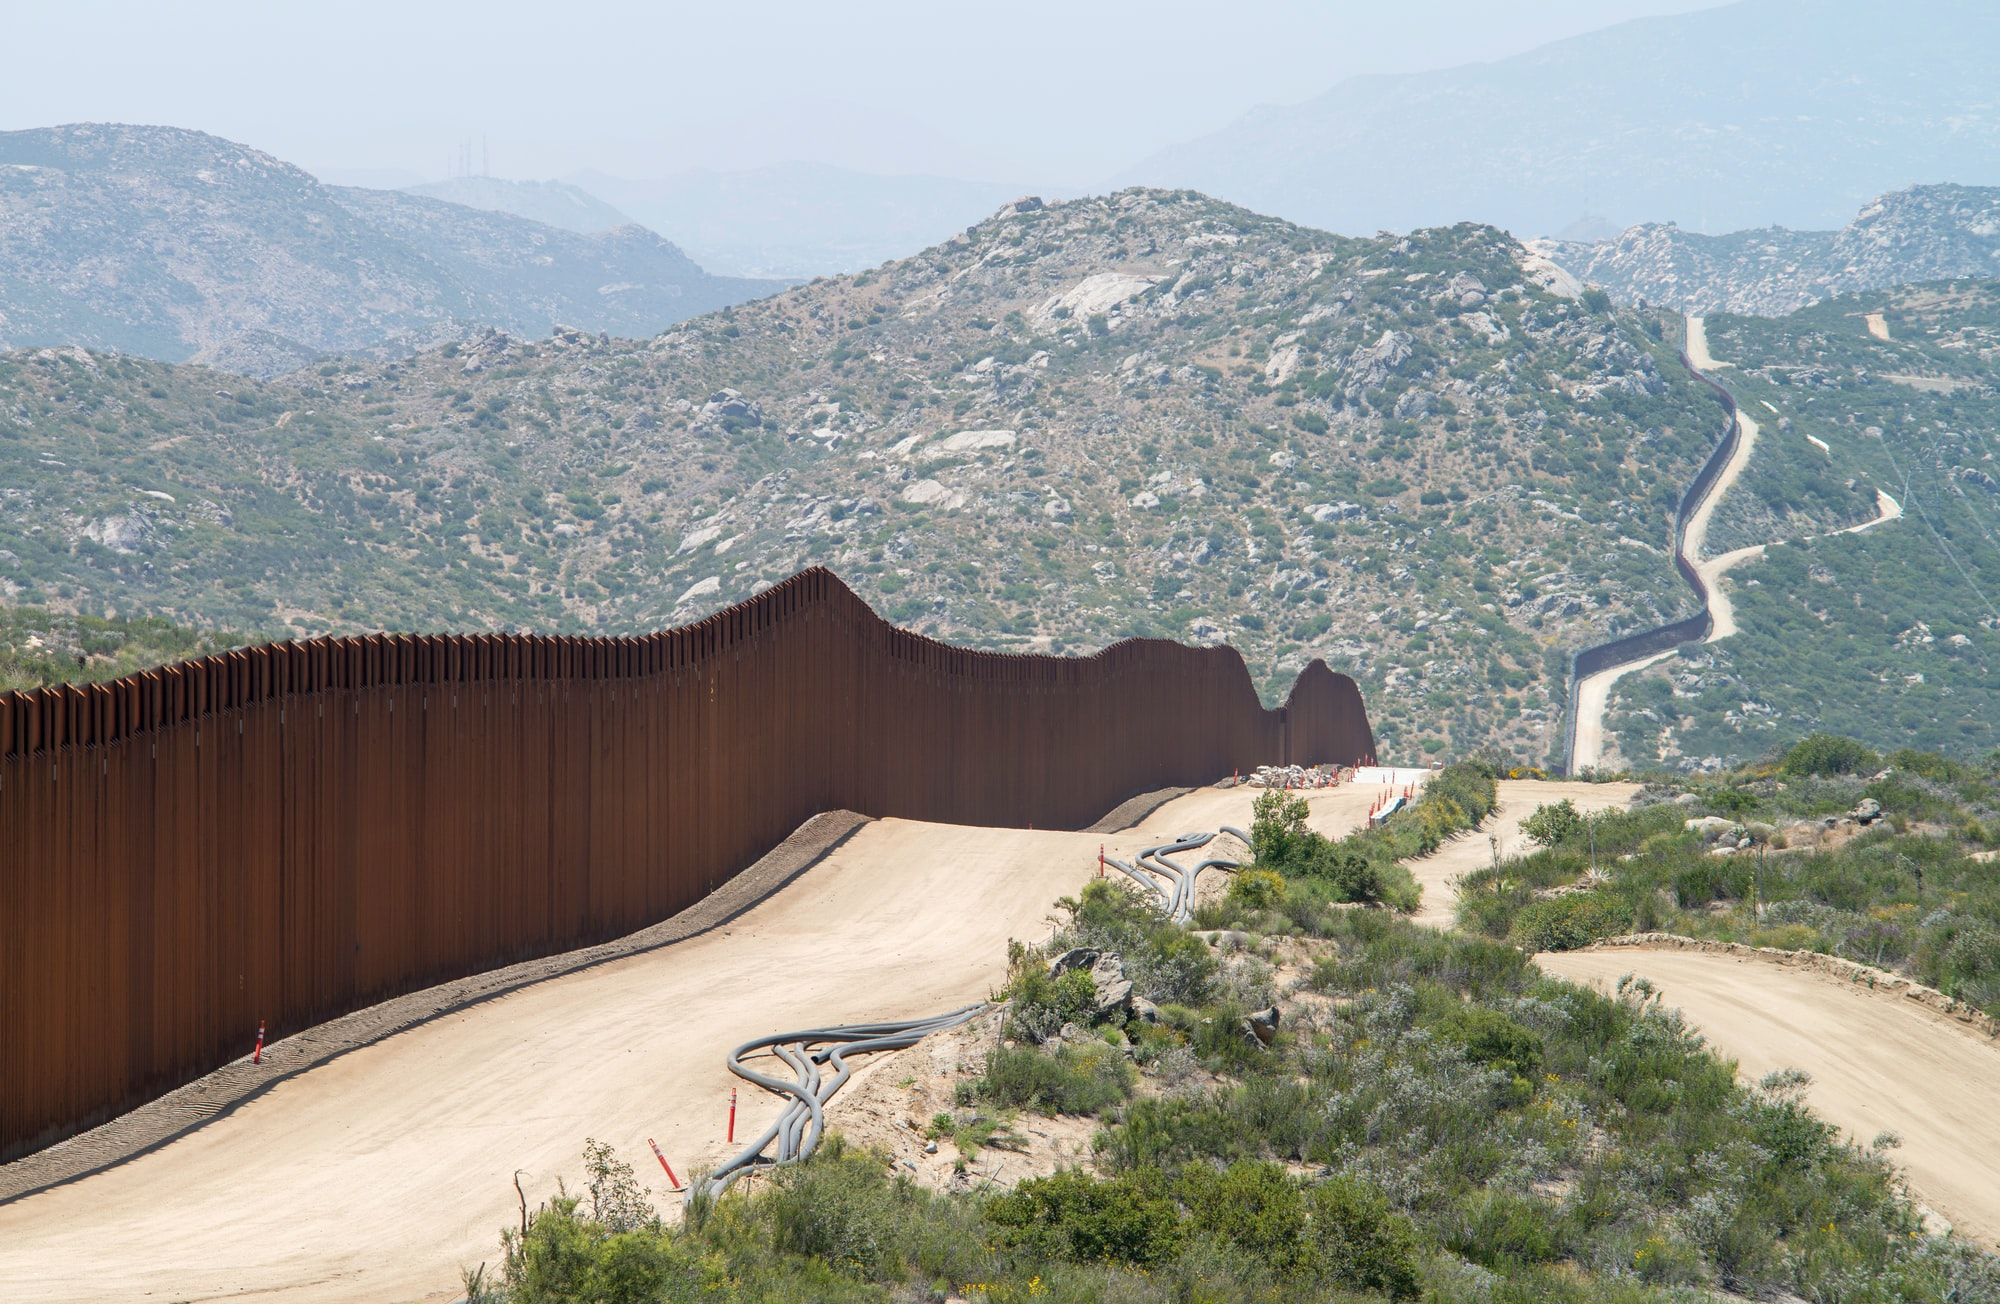 Border wall in the mountains